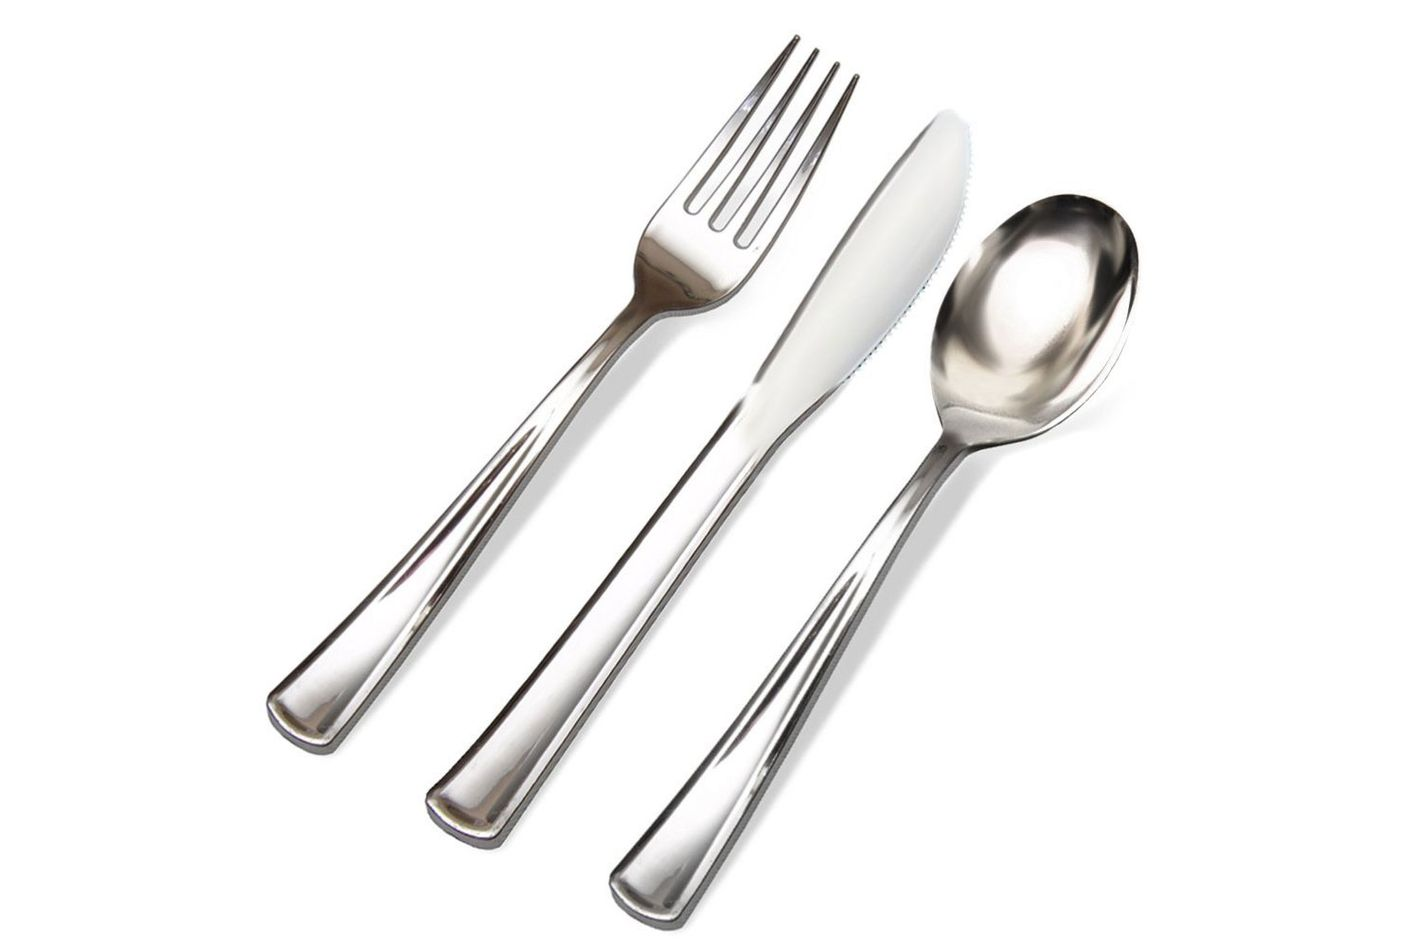 Silver Plastic Cutlery Premium Quality Disposable Silverware Polished 300-Count